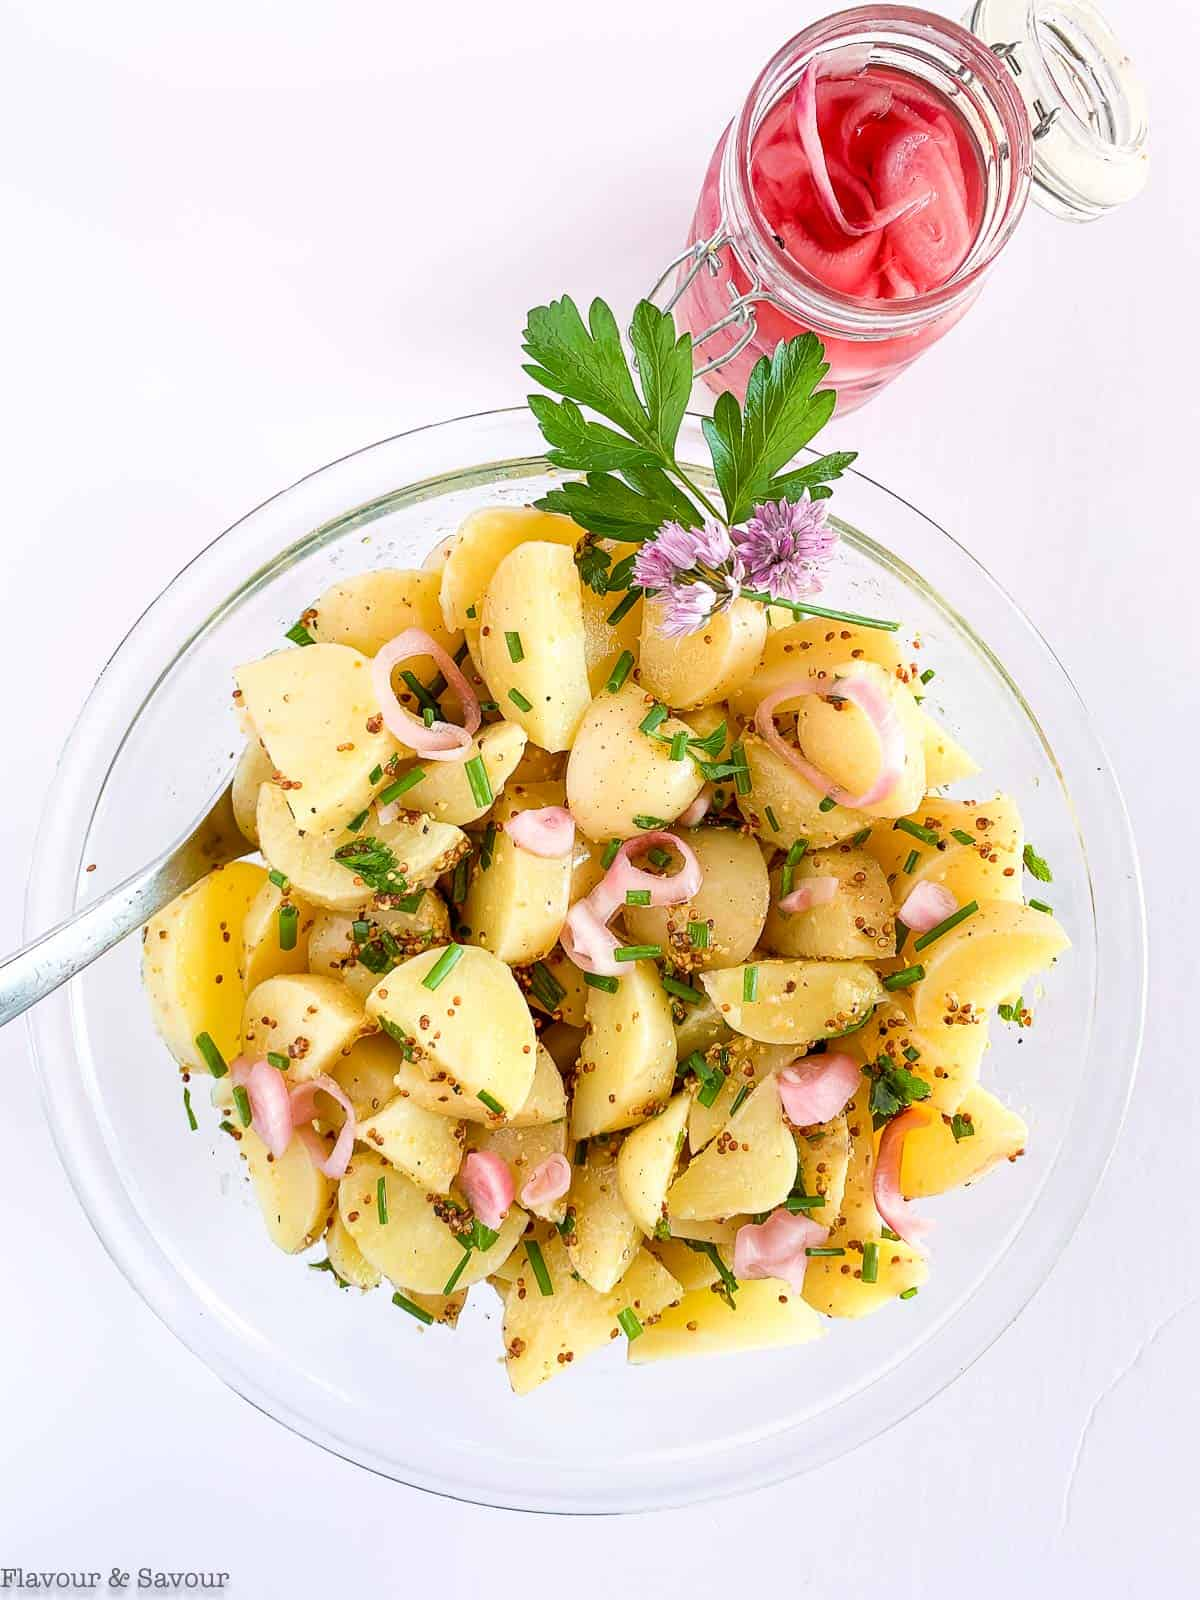 A bowl of Italian potato salad with a jar of pickled shallots beside